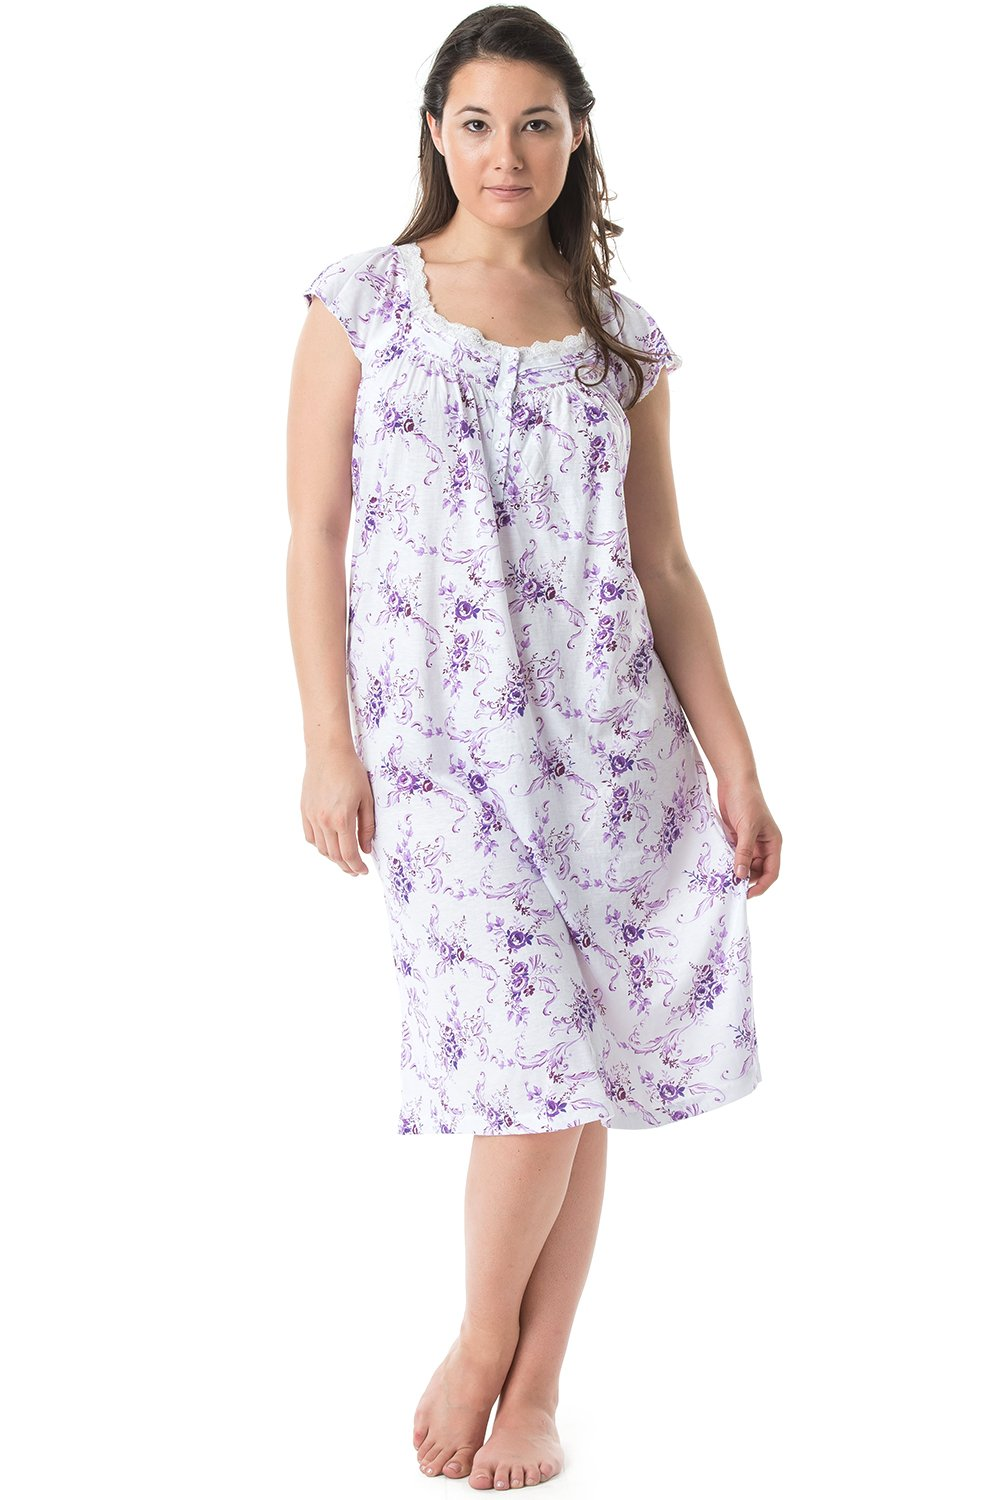 Casual Nights Women's Cap Sleeves Floral Lace Night Gown- Purple - Large